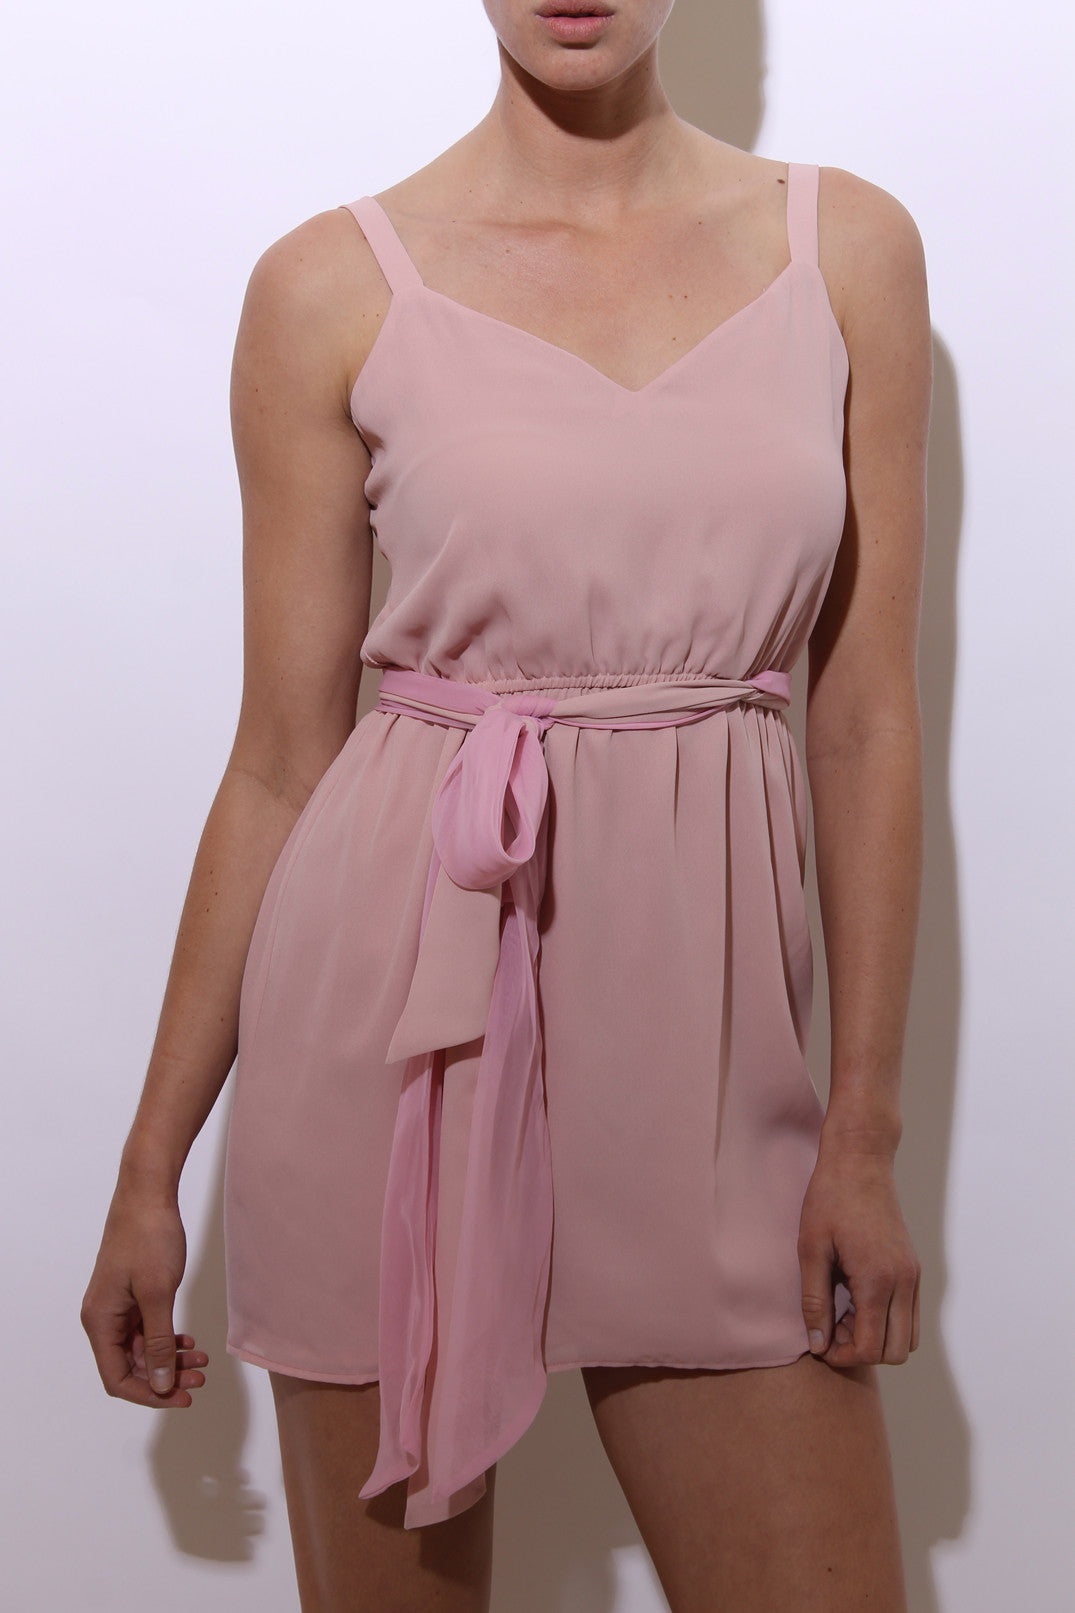 vintage 1970's 70's pastel pink chiffon mini dress tie belt sash sleeveless E26